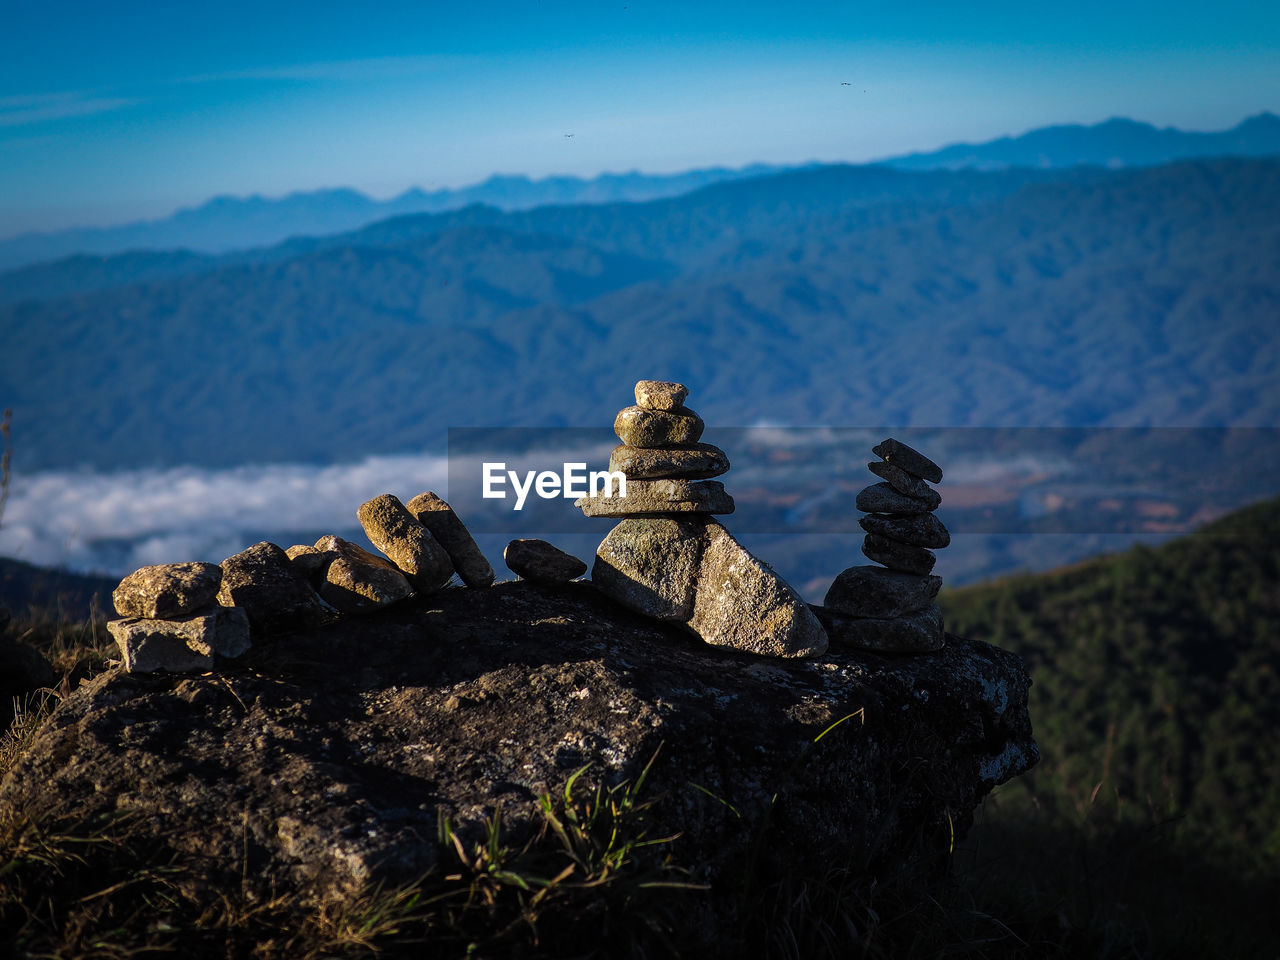 mountain, rock, solid, scenics - nature, sky, tranquil scene, rock - object, nature, tranquility, beauty in nature, no people, non-urban scene, environment, mountain range, day, landscape, stack, remote, focus on foreground, balance, outdoors, mountain peak